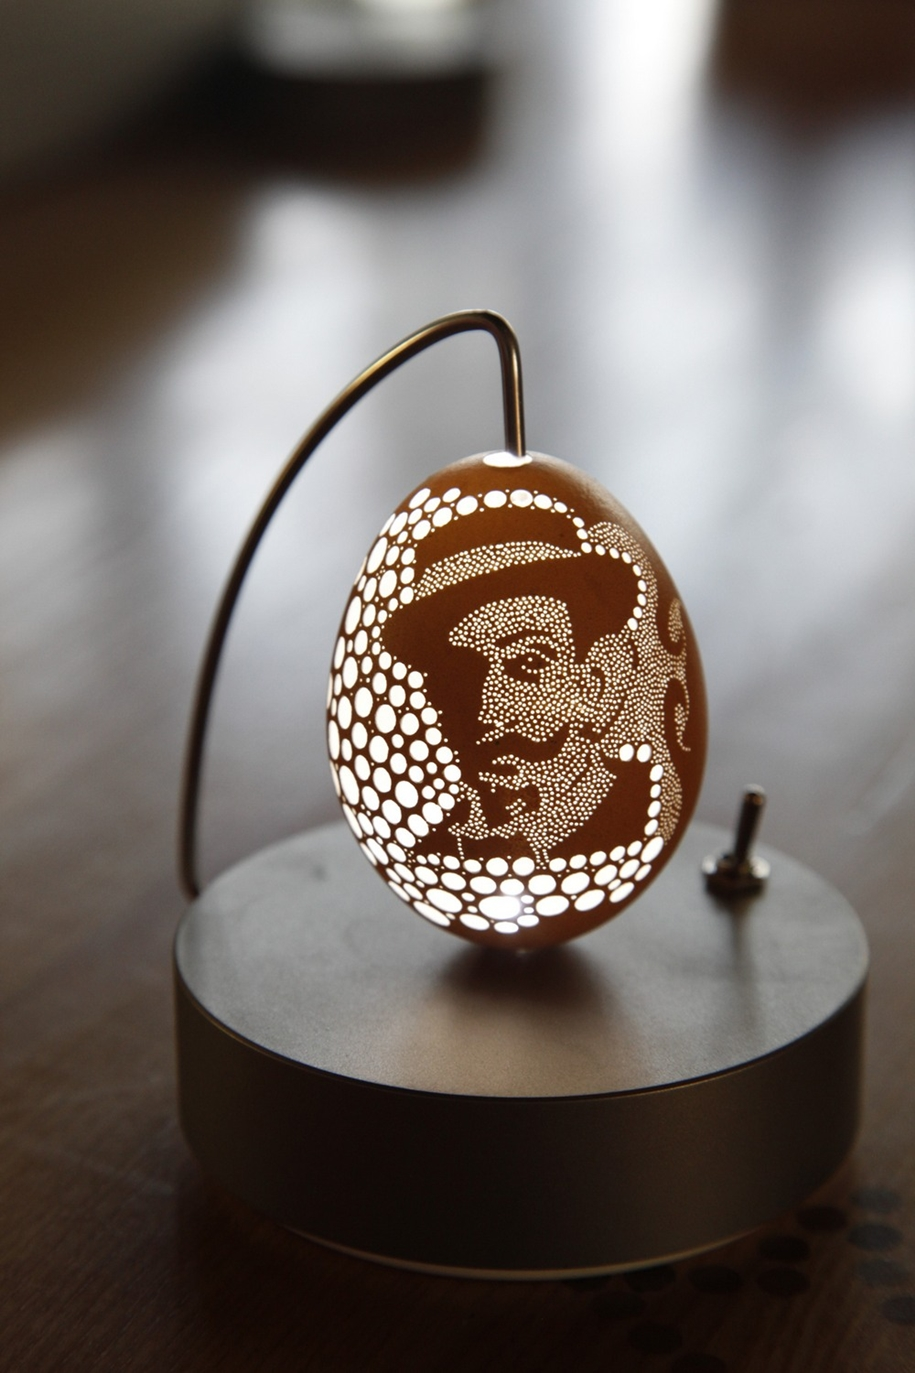 wonderful-patterns-on-eggshells-15